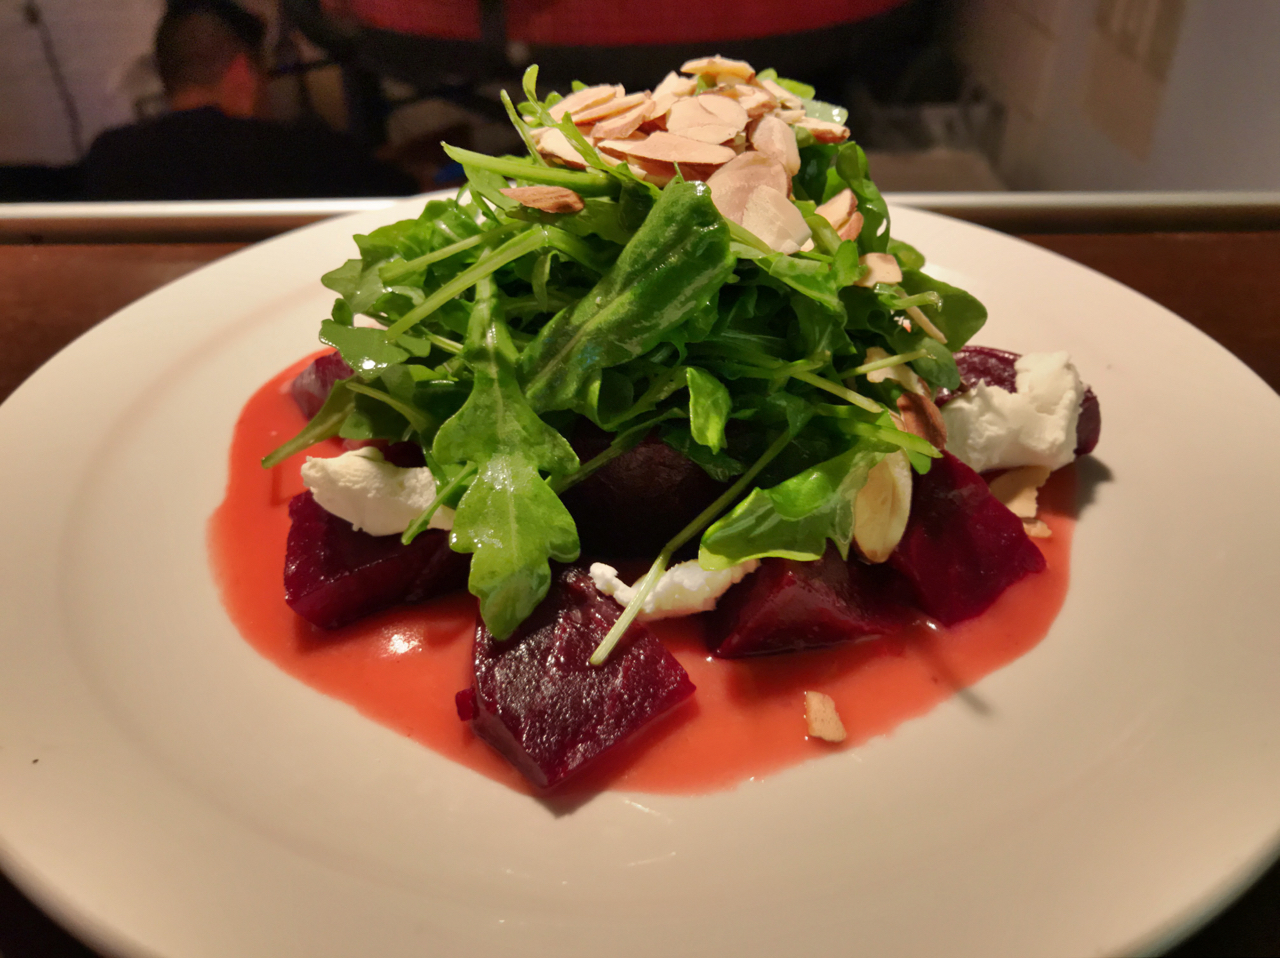 Roasted beet, arugula and goat cheese salad is coming to the menu at Pizzeria 22